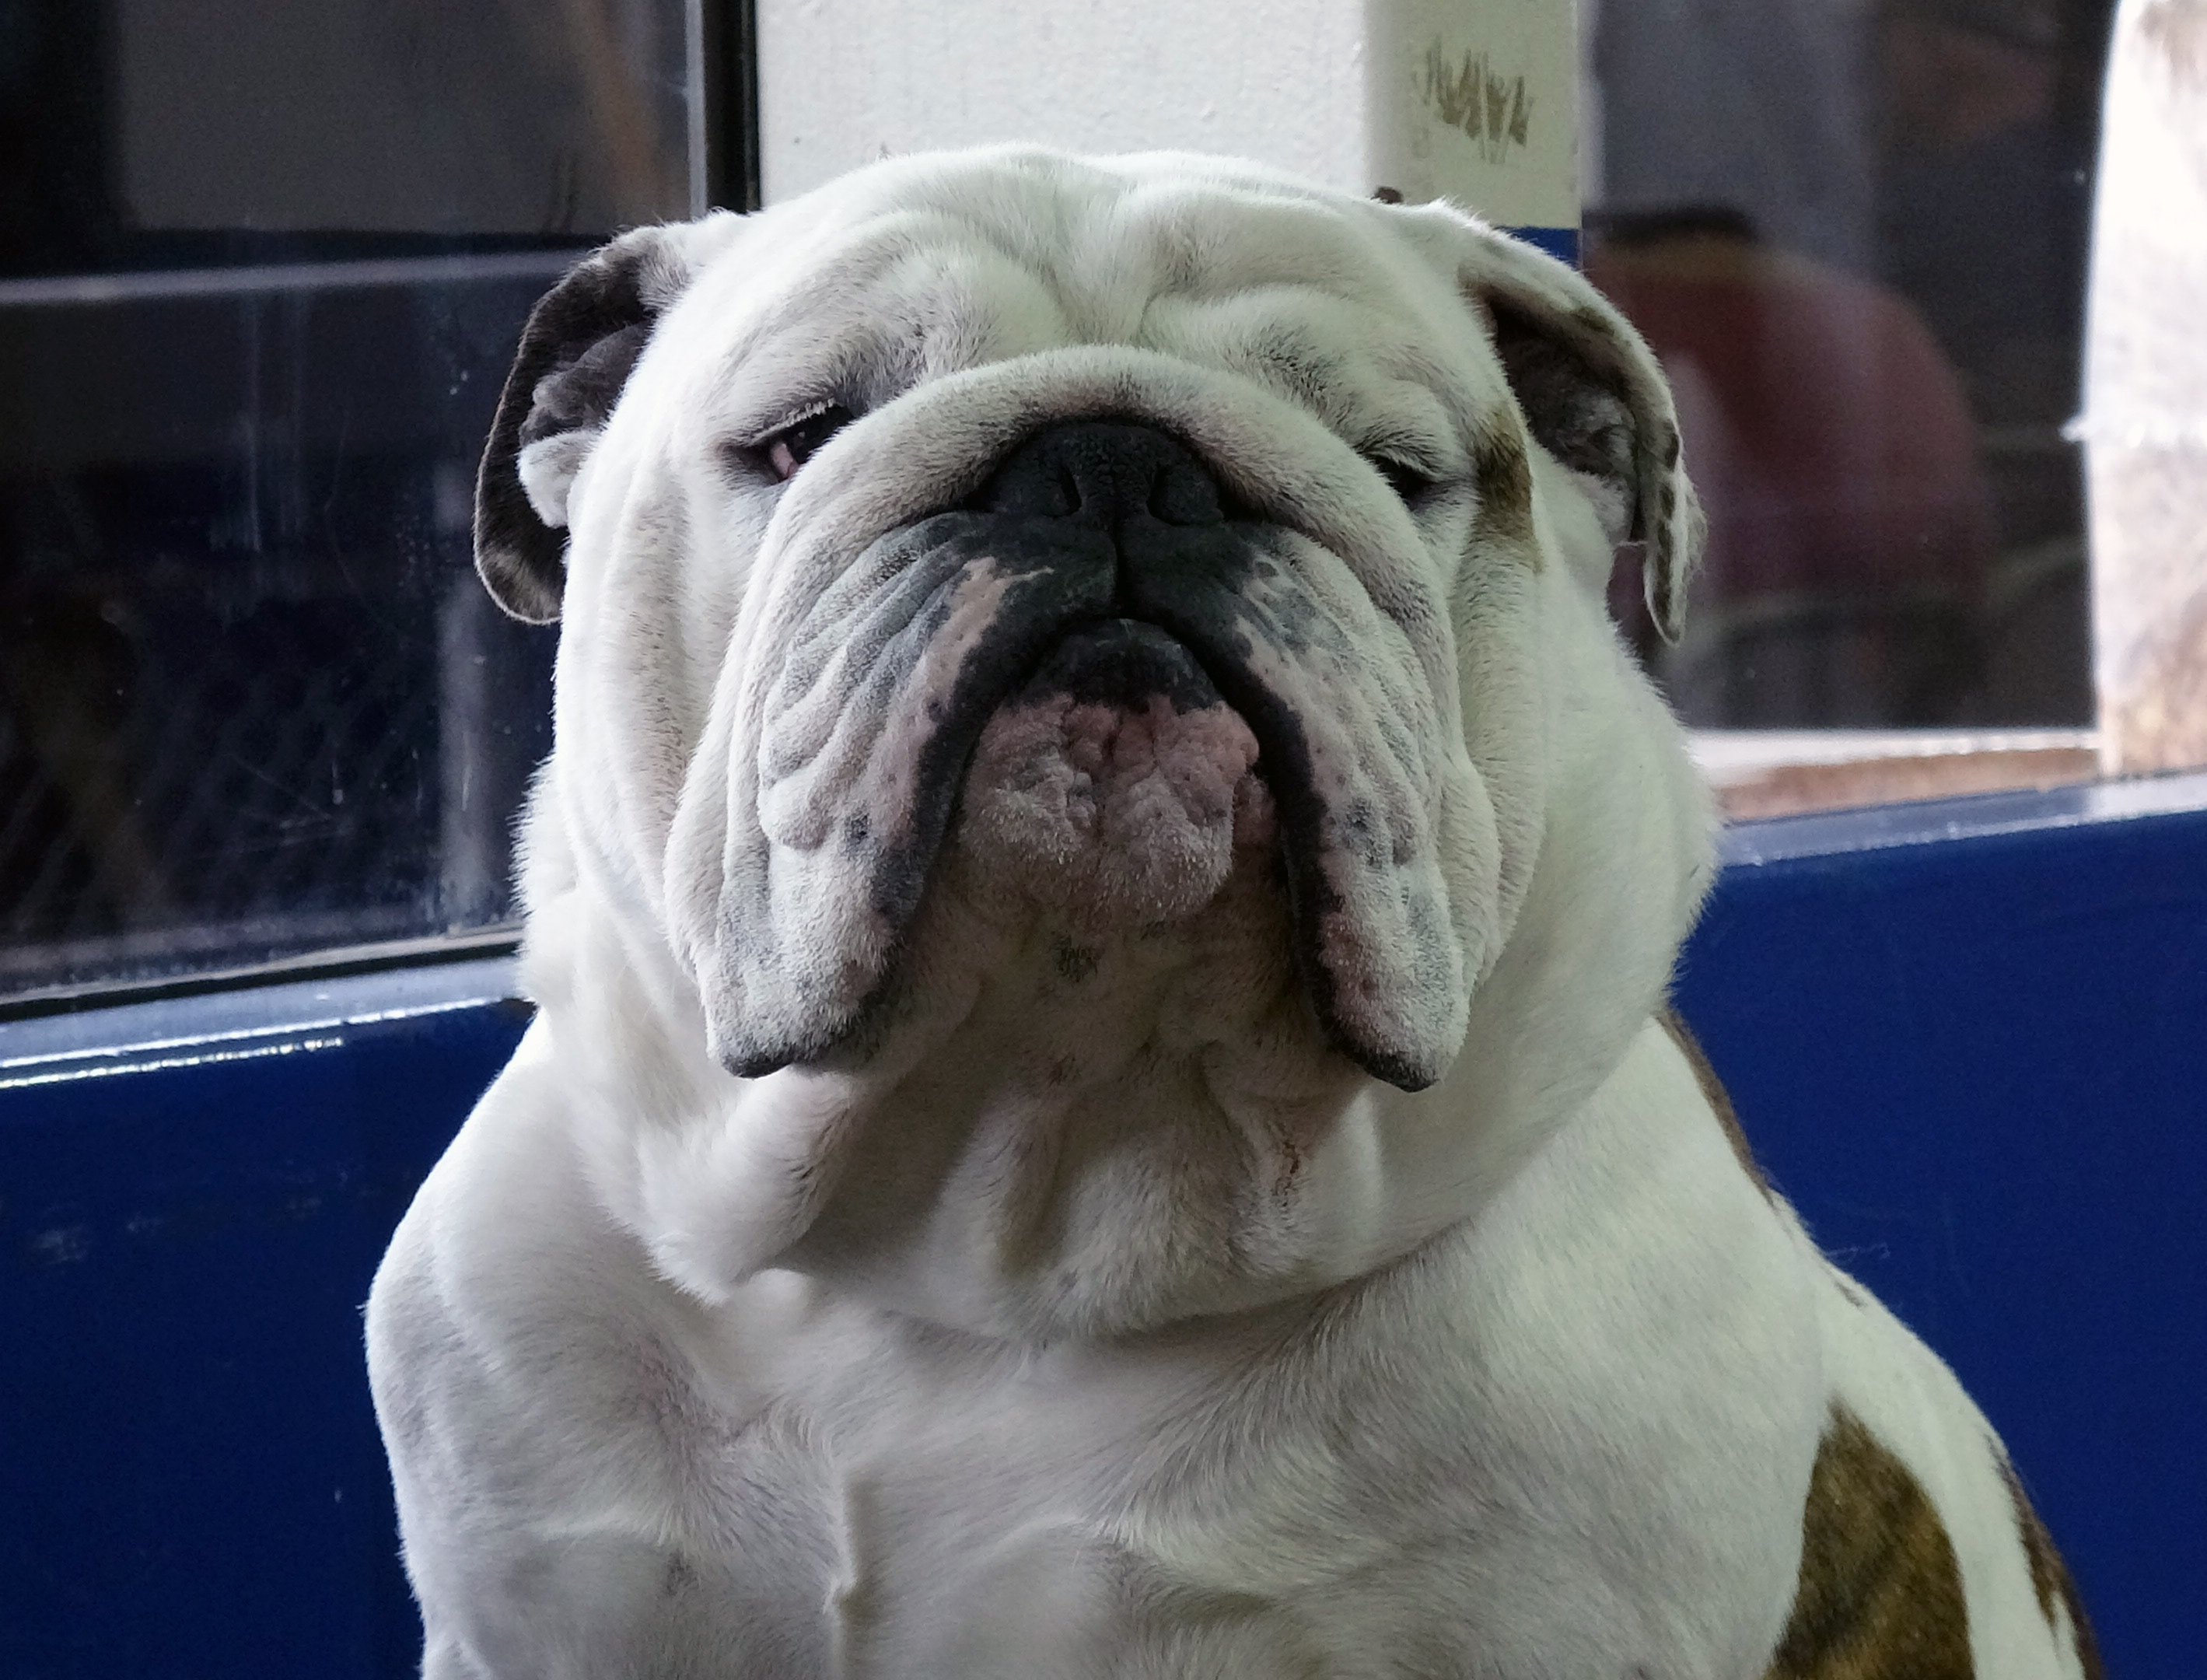 """<div class=""""meta image-caption""""><div class=""""origin-logo origin-image none""""><span>none</span></div><span class=""""caption-text"""">Meet some of the dogs of the 2019 Westminster Kennel Club Dog Show in New York City.</span></div>"""